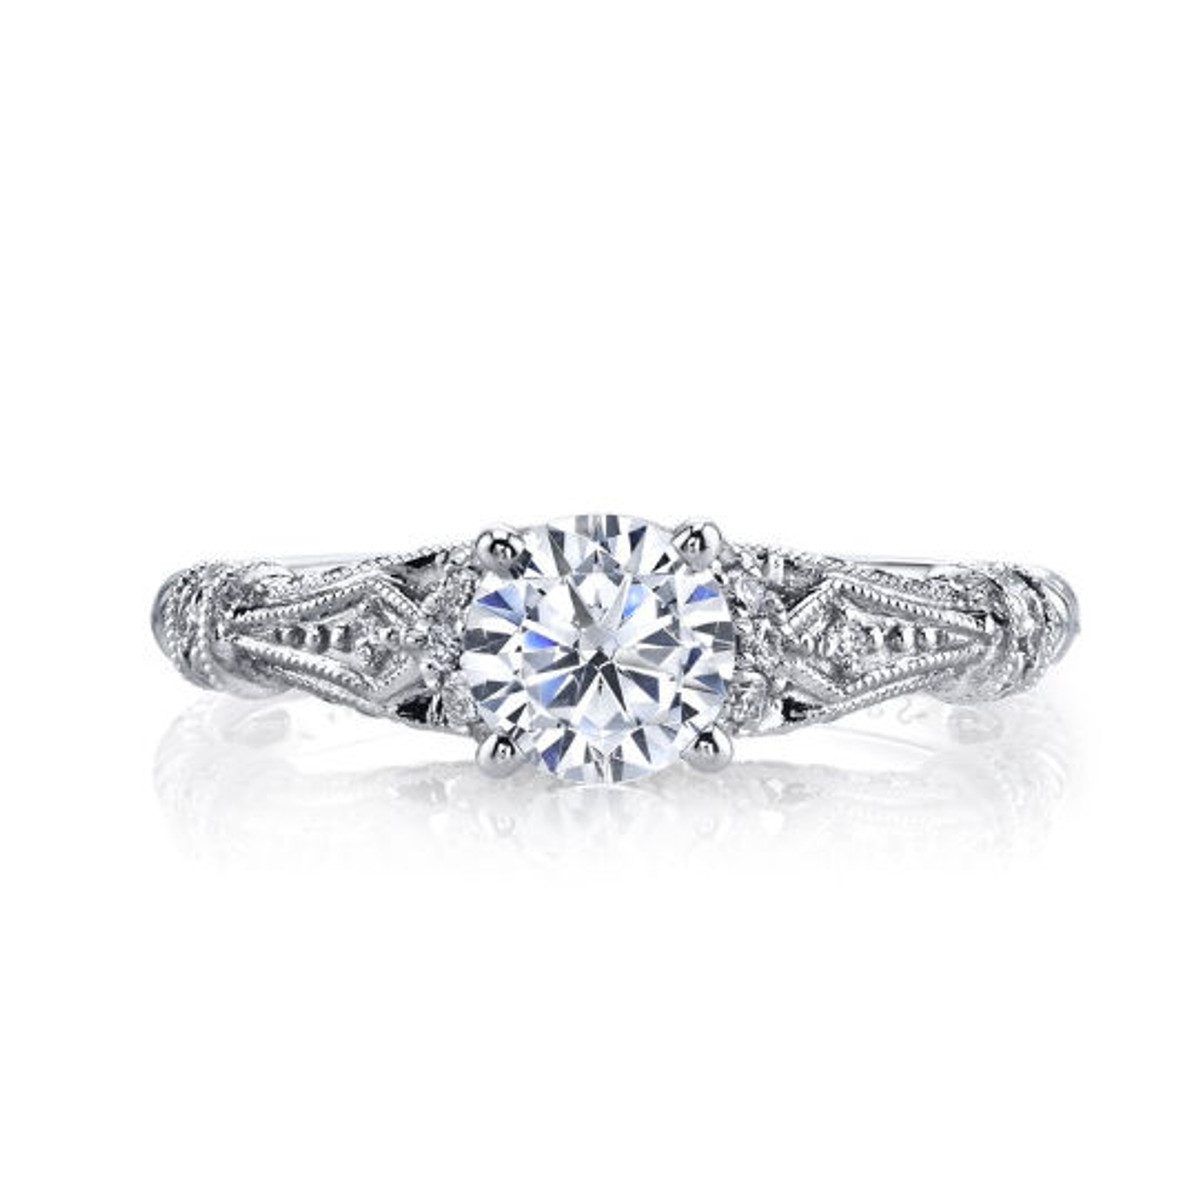 Vintage Diamond Accent Ring